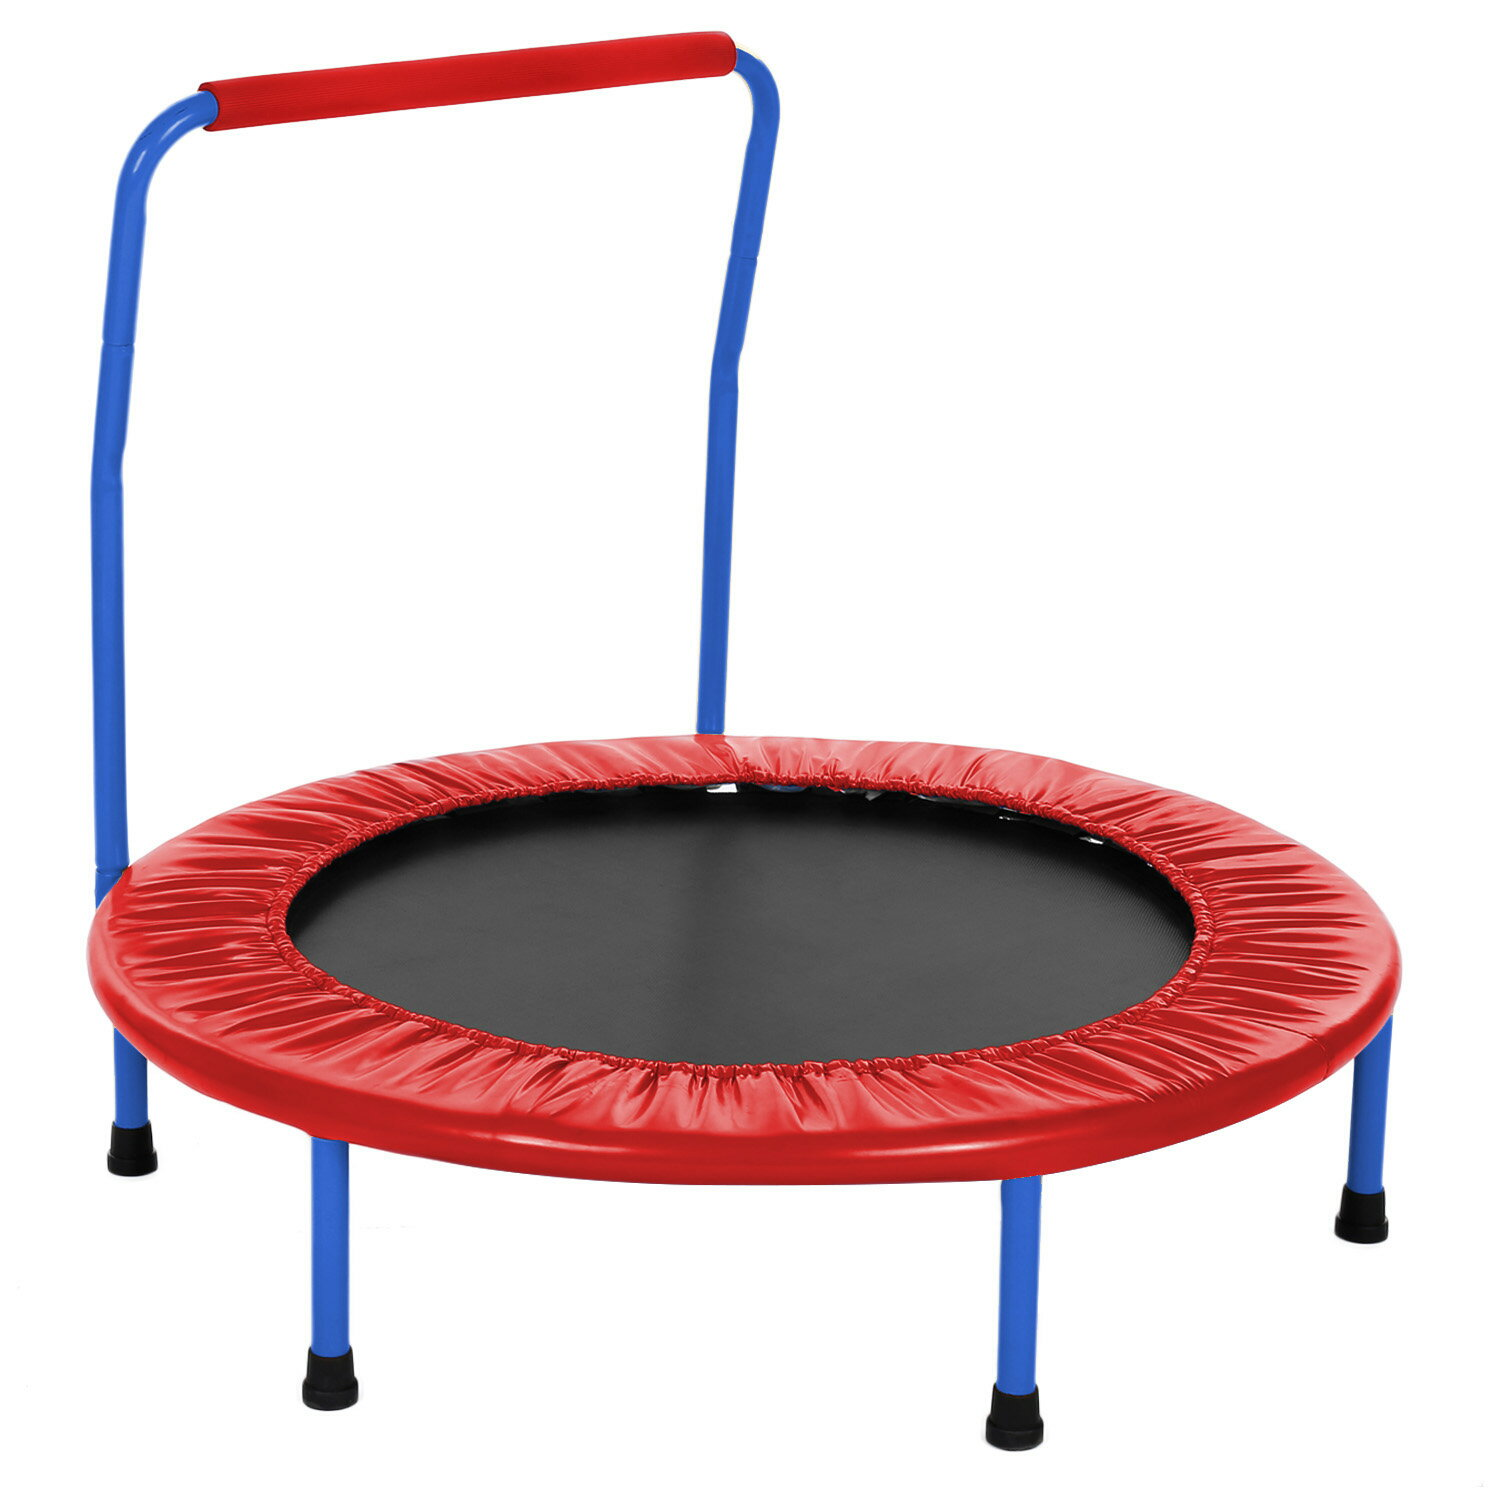 Kids Foldable Durable Construction Safe Trampoline with Padded Frame 0